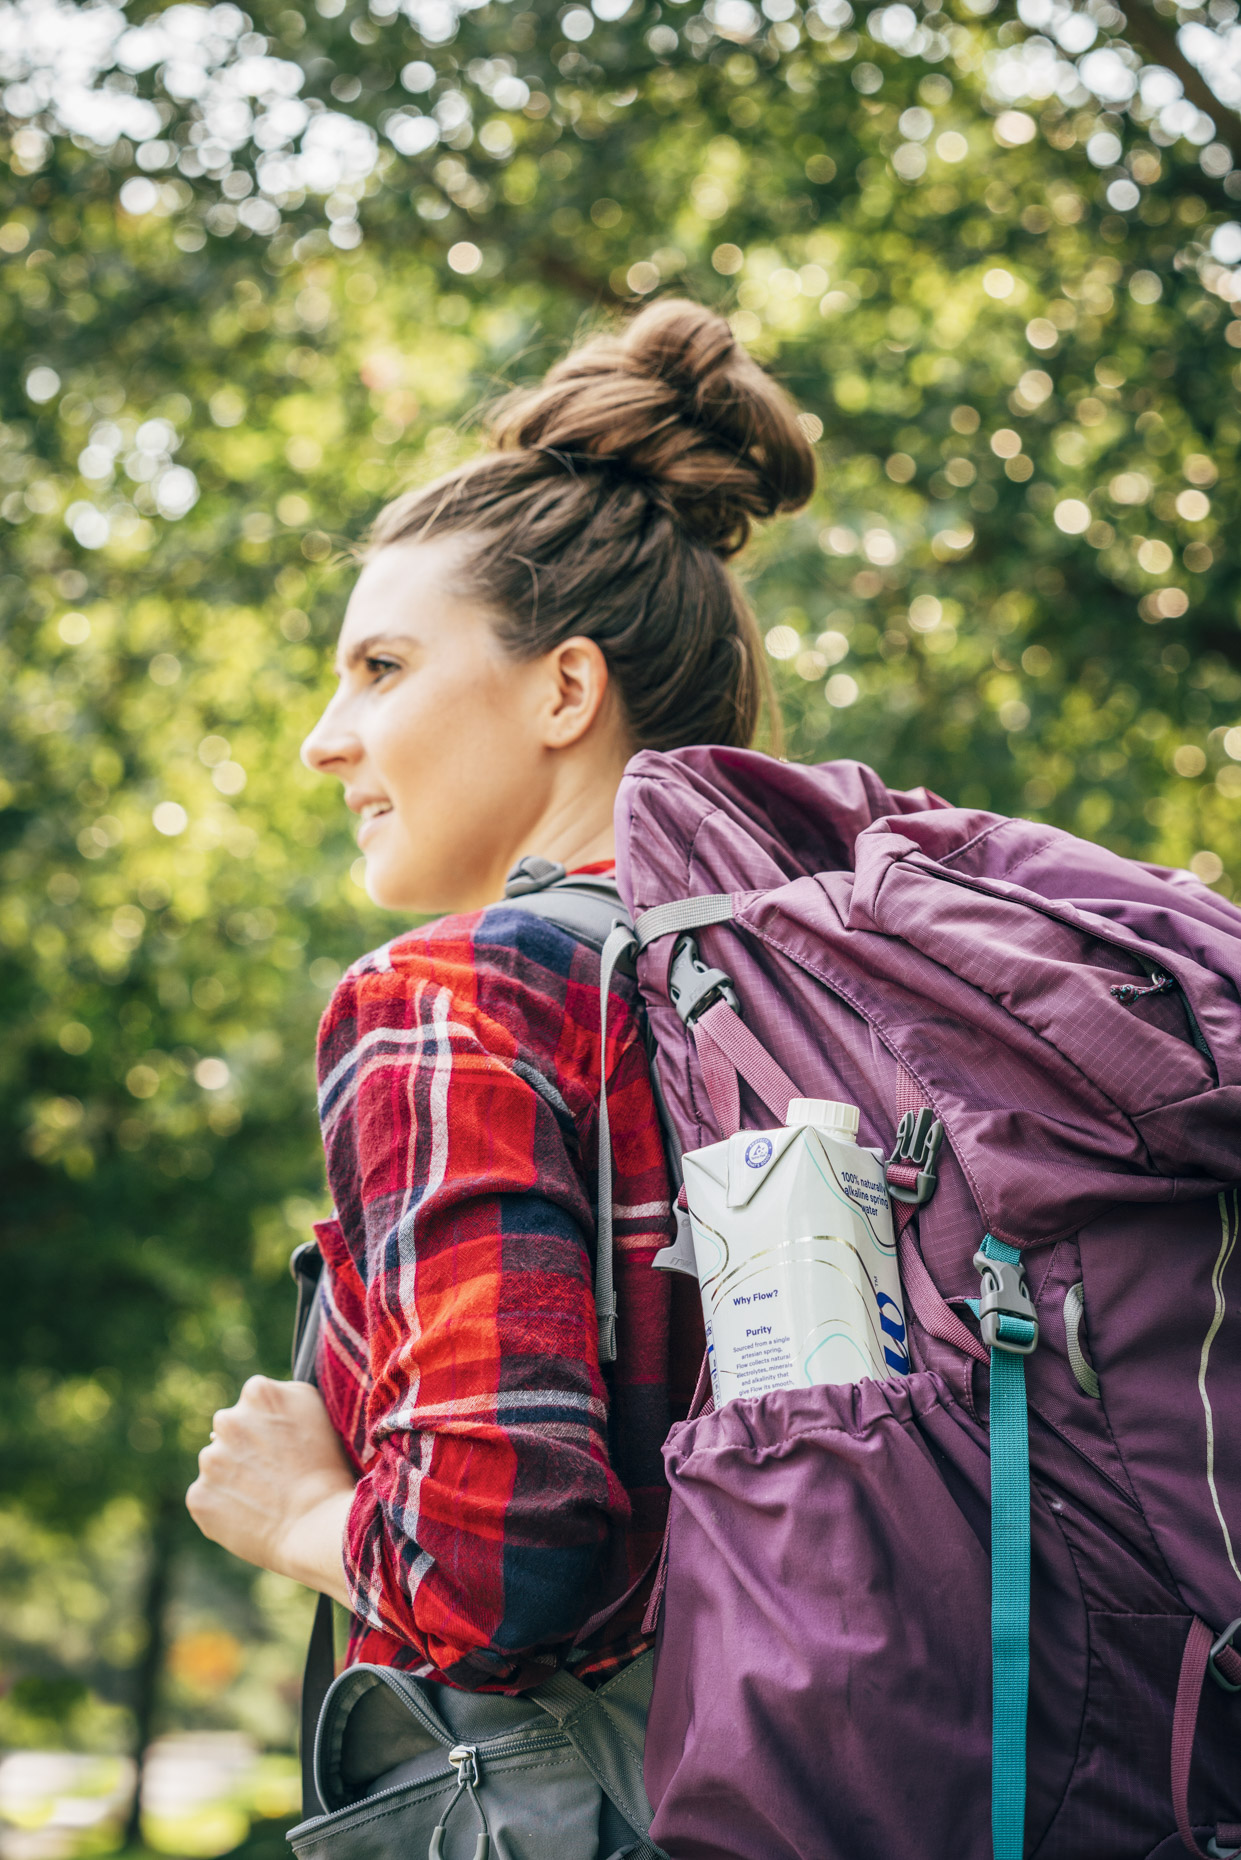 Woman hiking with box of water in backpack